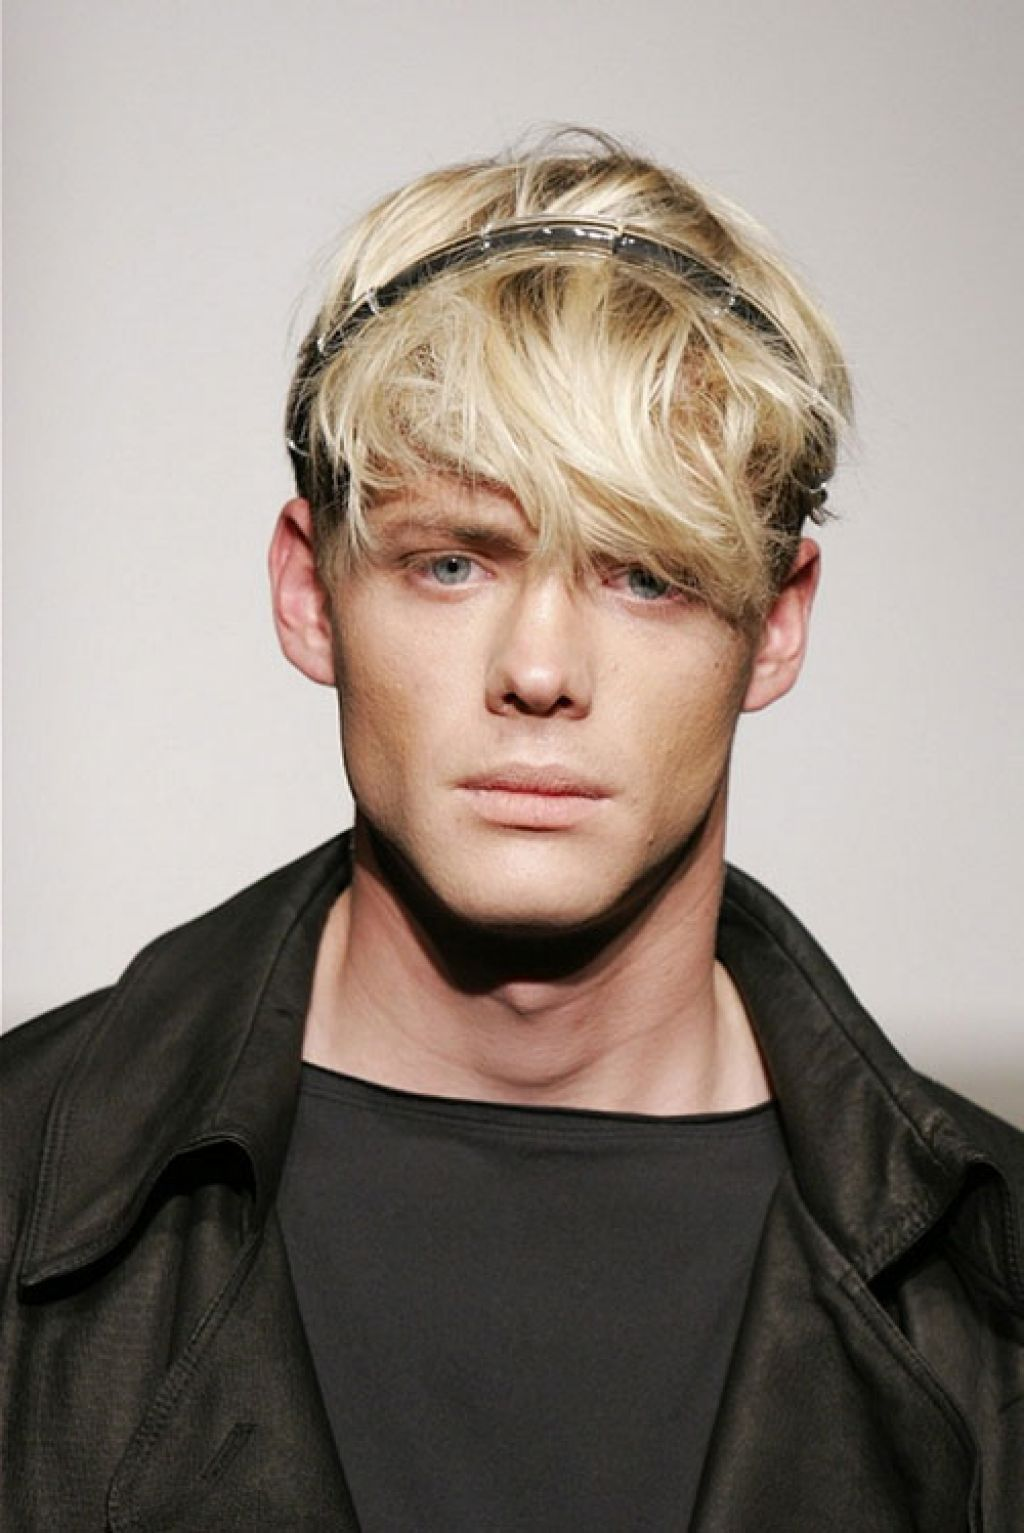 Mens blonde hair dye trendy hairstyles hair pinterest trendy